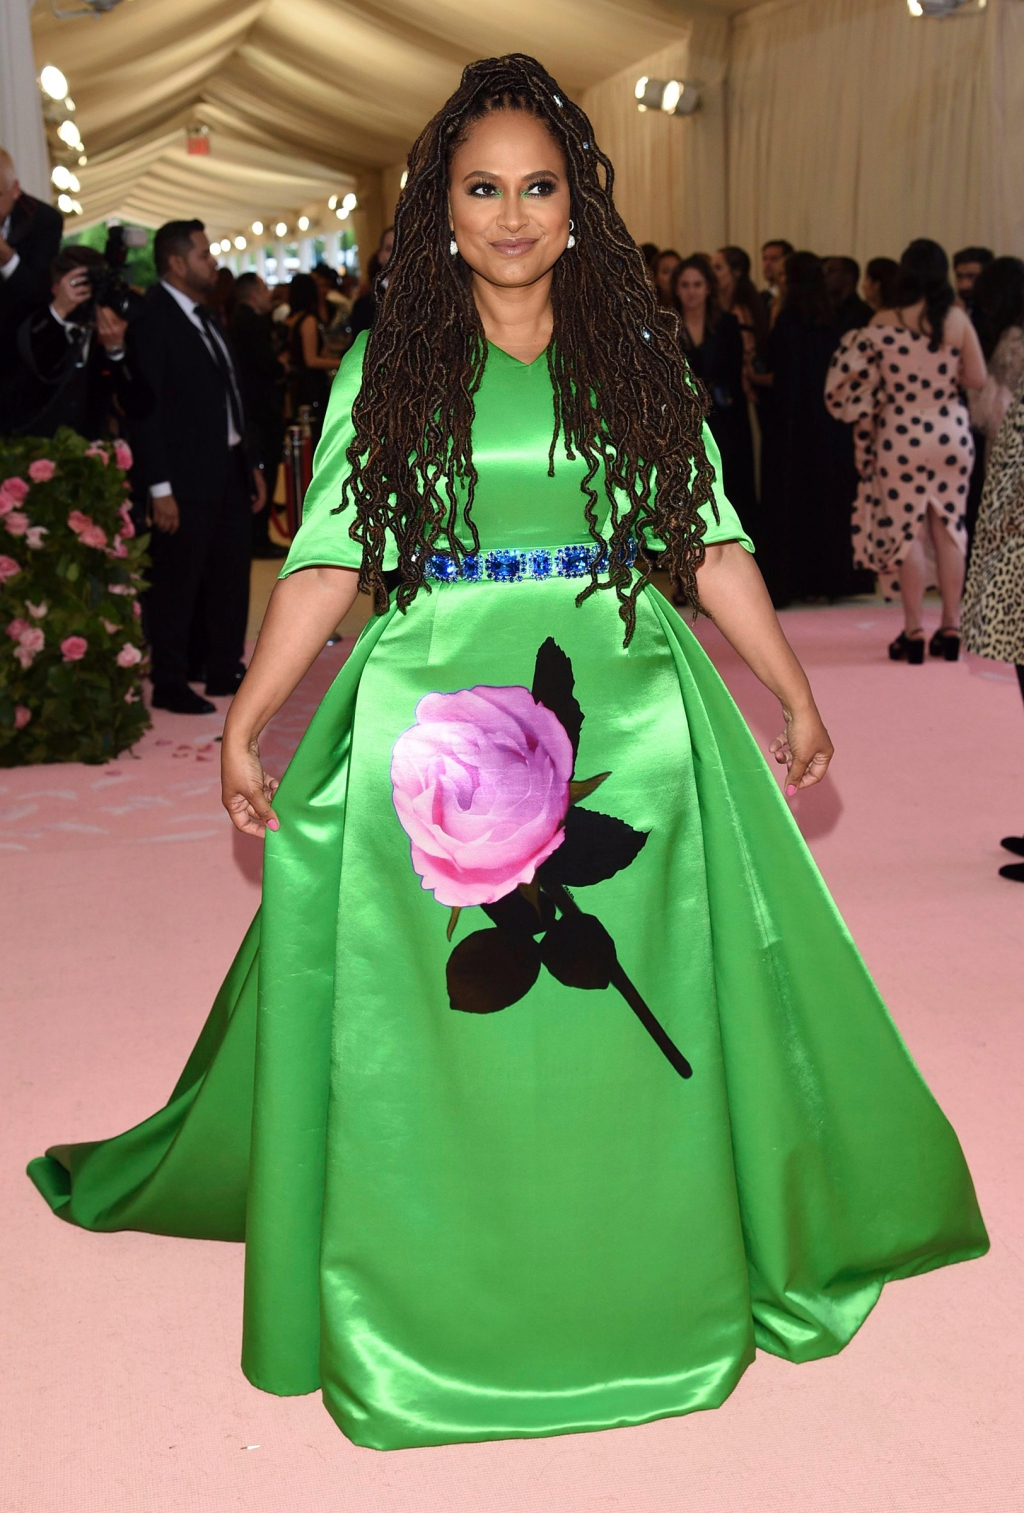 Ava DuVernay attends The 2019 Met Gala Celebrating Camp: Notes on Fashion at Metropolitan Museum of Art on May 06, 2019 in New York City.